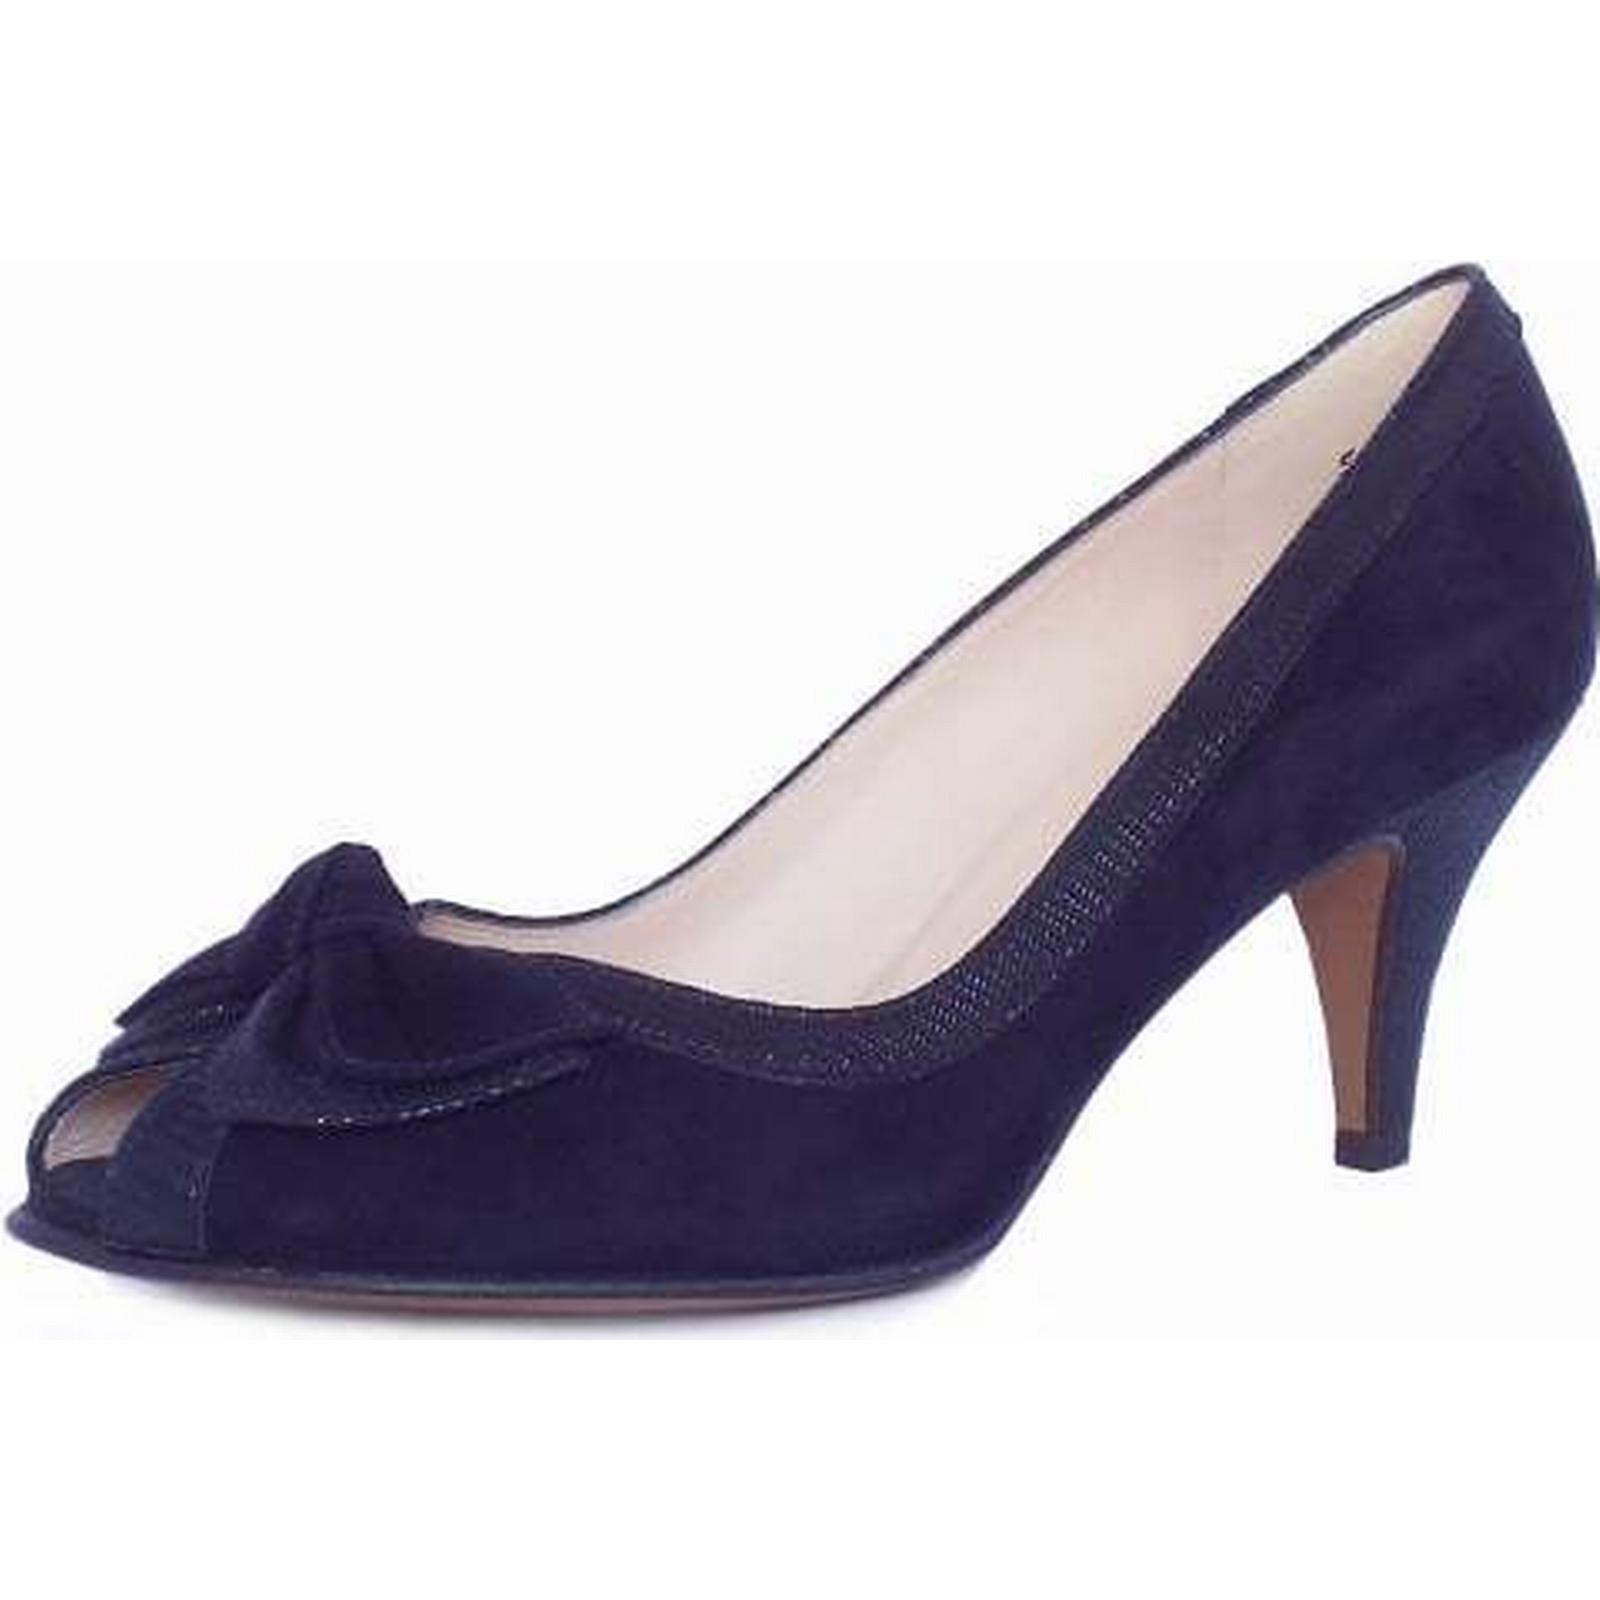 Peter Kaiser SATYR PETER KAISER LADIES SHOES Size: 5.5, Colour: NAVY NAVY Colour: S a0ca5f